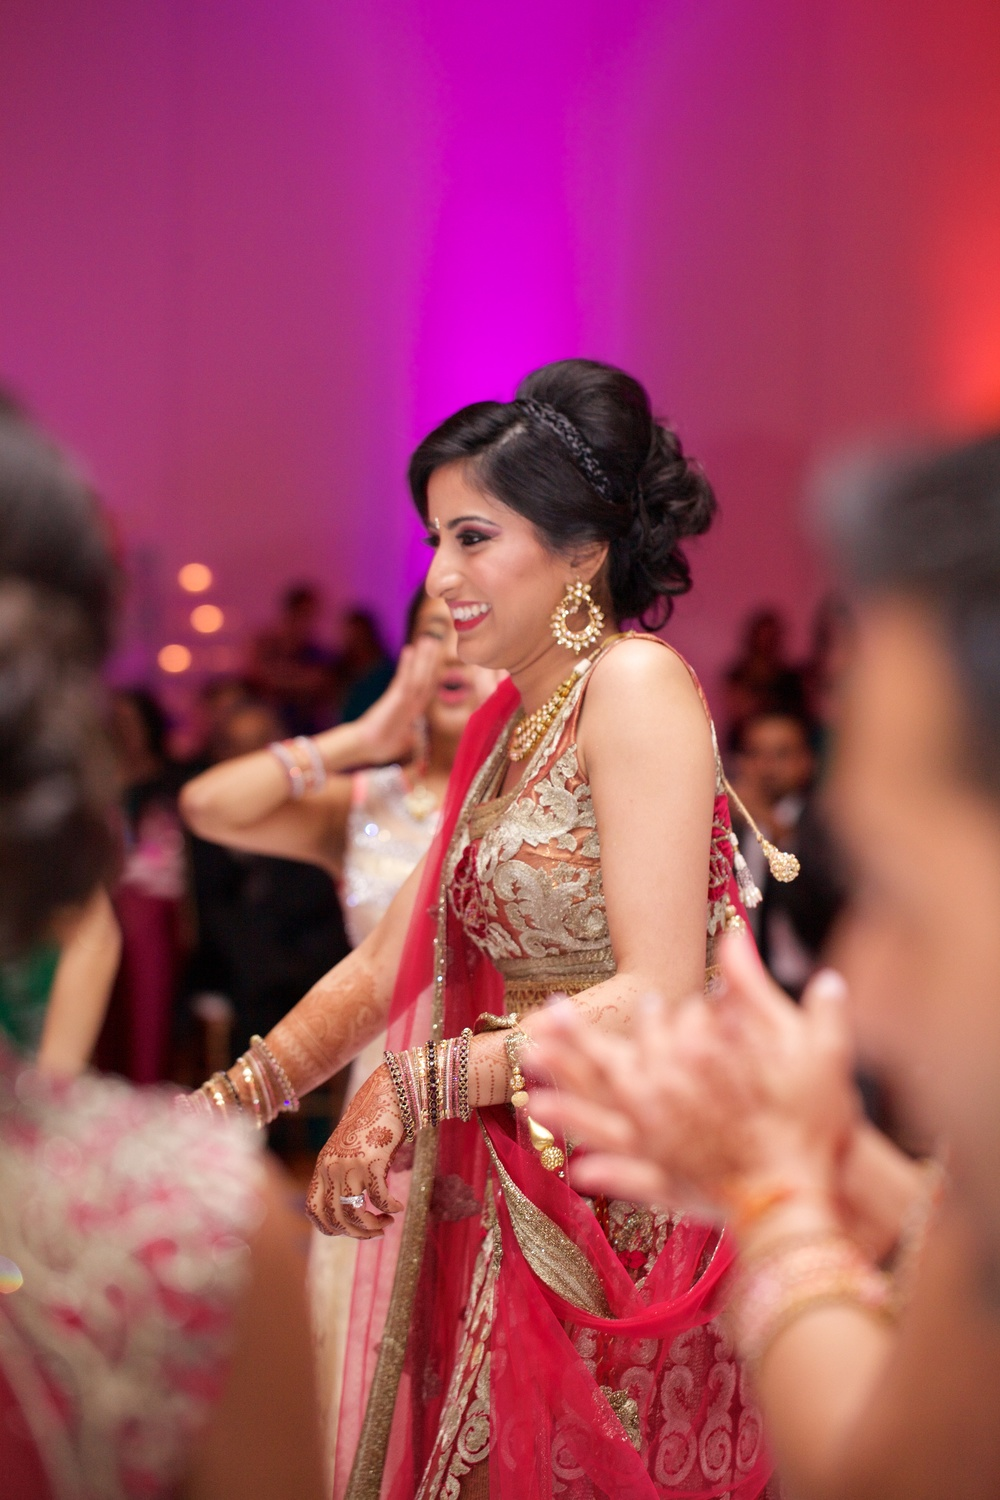 le cape weddings - indian wedding - day 4 - megan and karthik reception 167.jpg